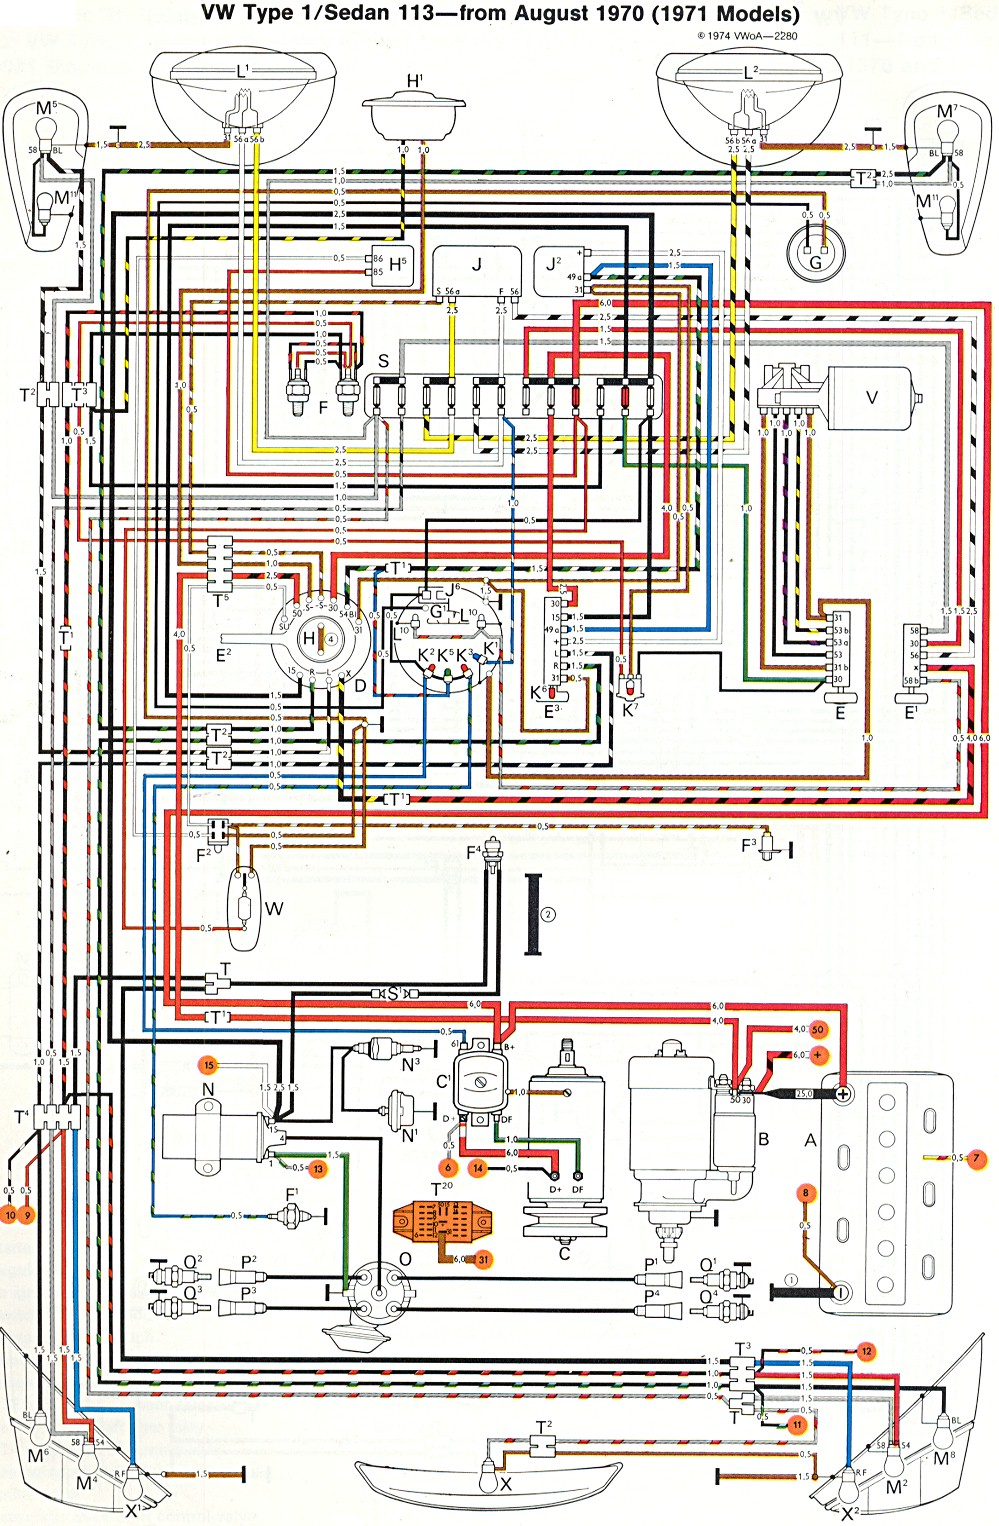 bug_super_71 2002 vw beetle wiring diagram altenator wiring diagram 2002 vw Wiring Harness Diagram at honlapkeszites.co